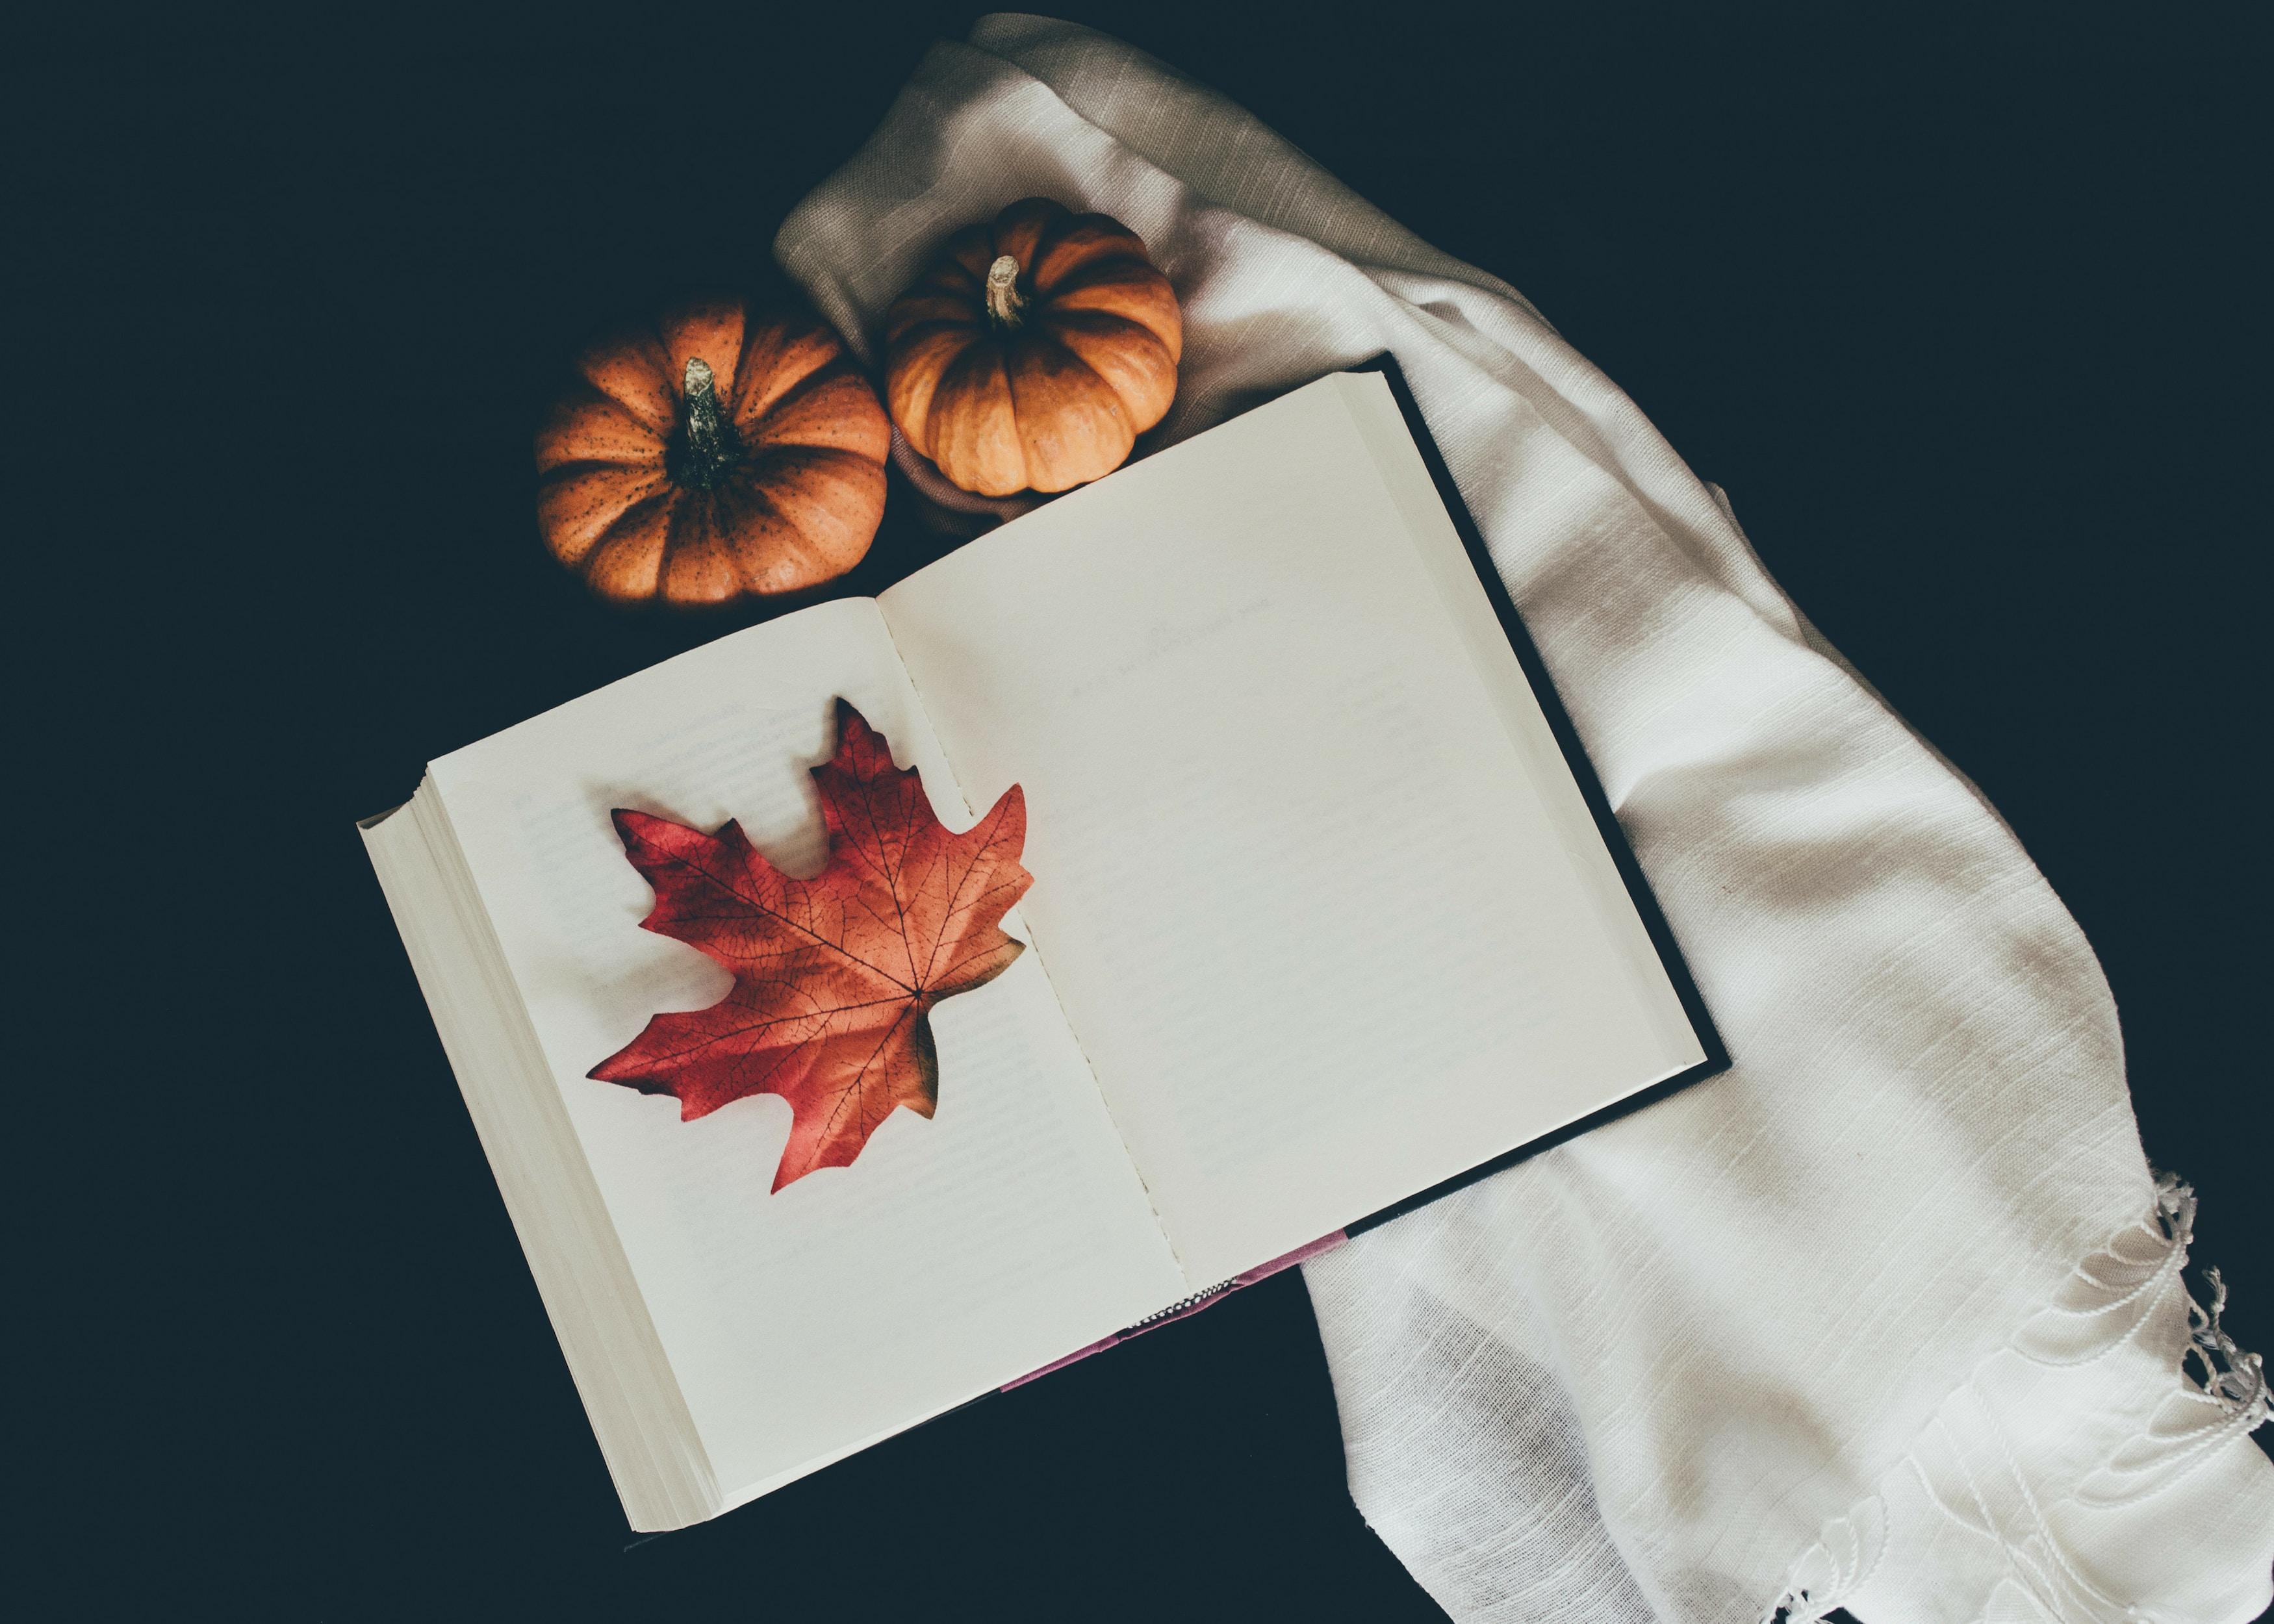 133161 Screensavers and Wallpapers Scarf for phone. Download Pumpkin, Autumn, Miscellanea, Miscellaneous, Book, Leaflet, Scarf pictures for free